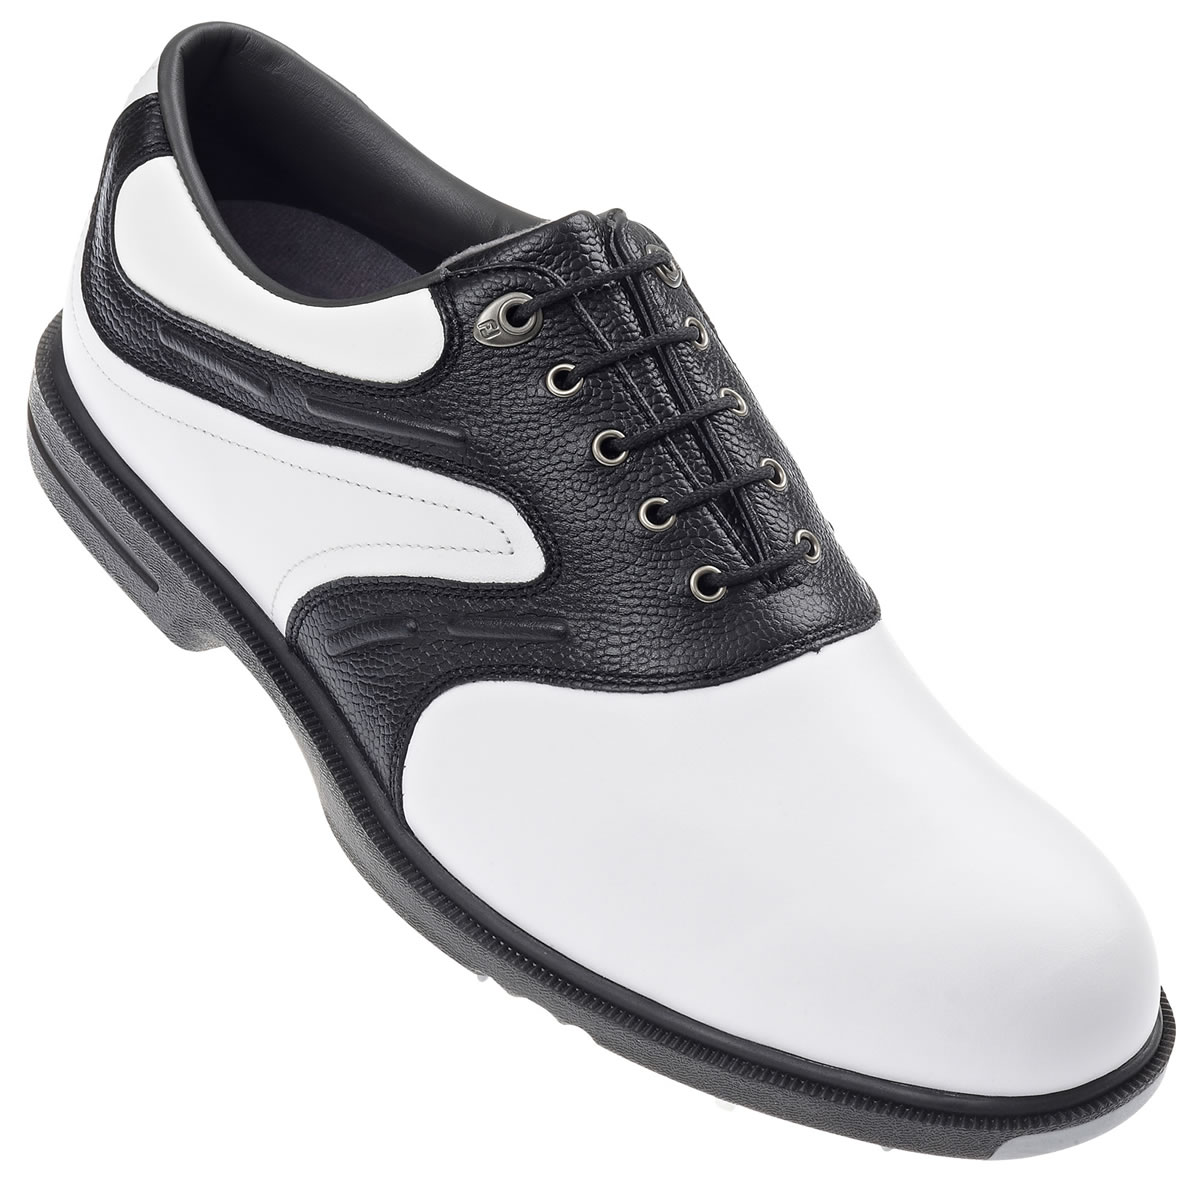 Footjoy Dry Ice Golf Shoes